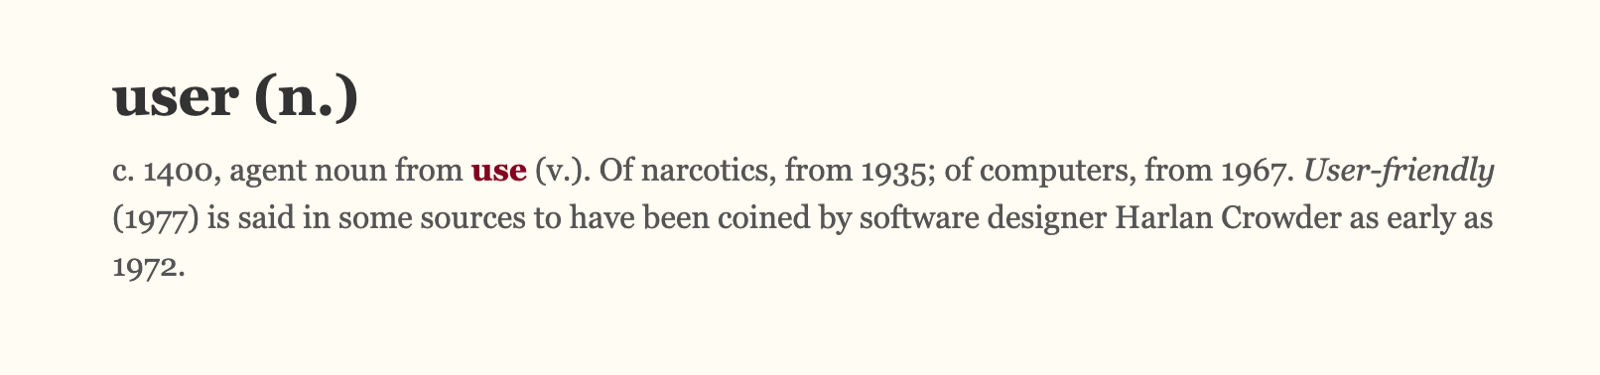 user (n.) c. 1400, agent noun from use (v.). Of narcotics, from 1935; of computers, from 1967.